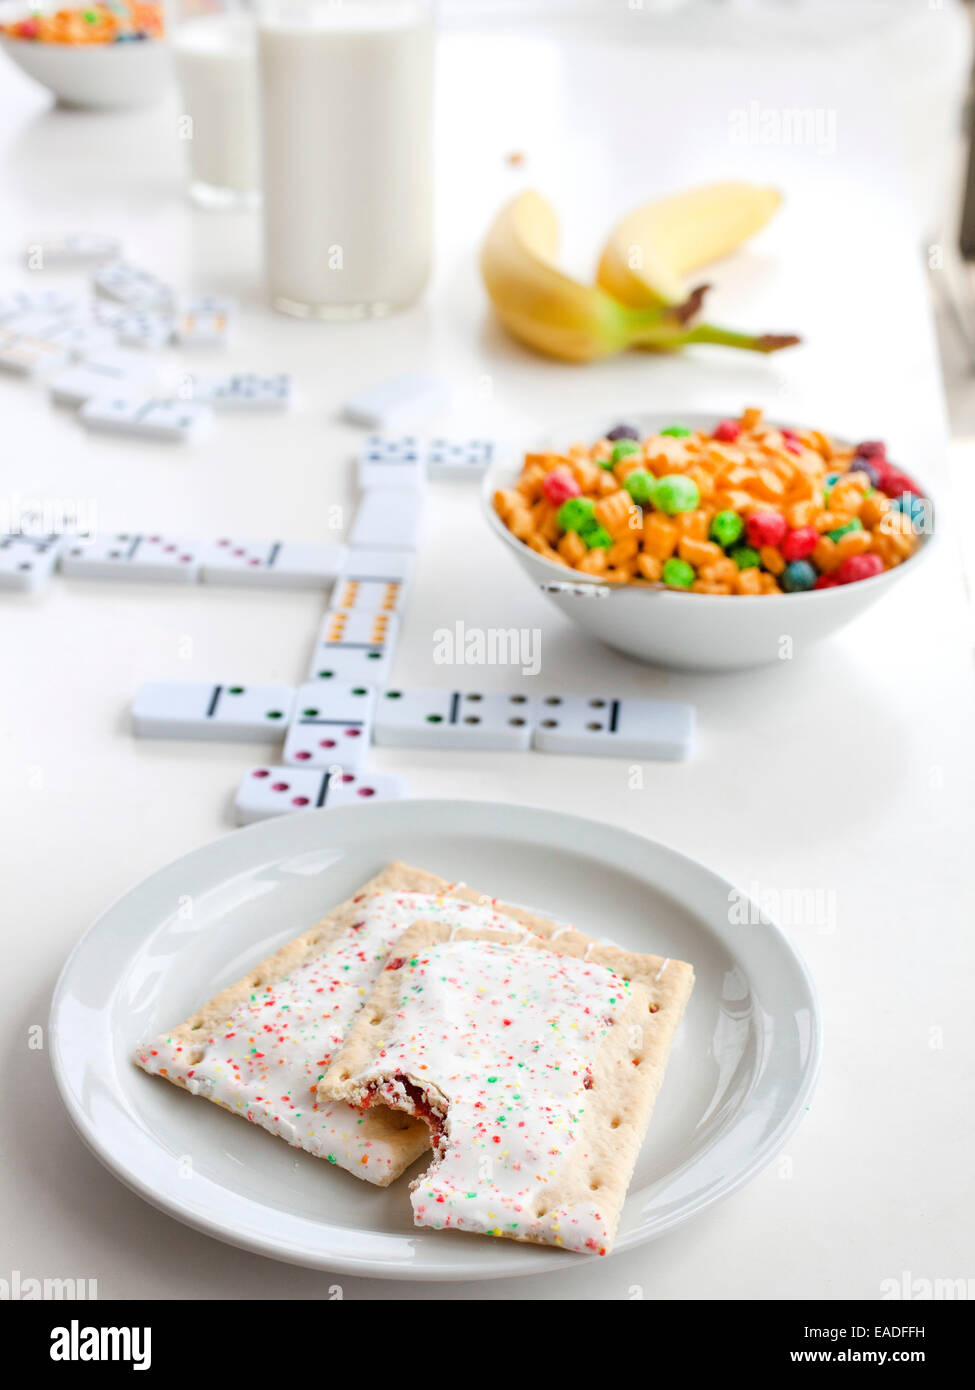 Pop Tarts and breakfast on table with games - Stock Image